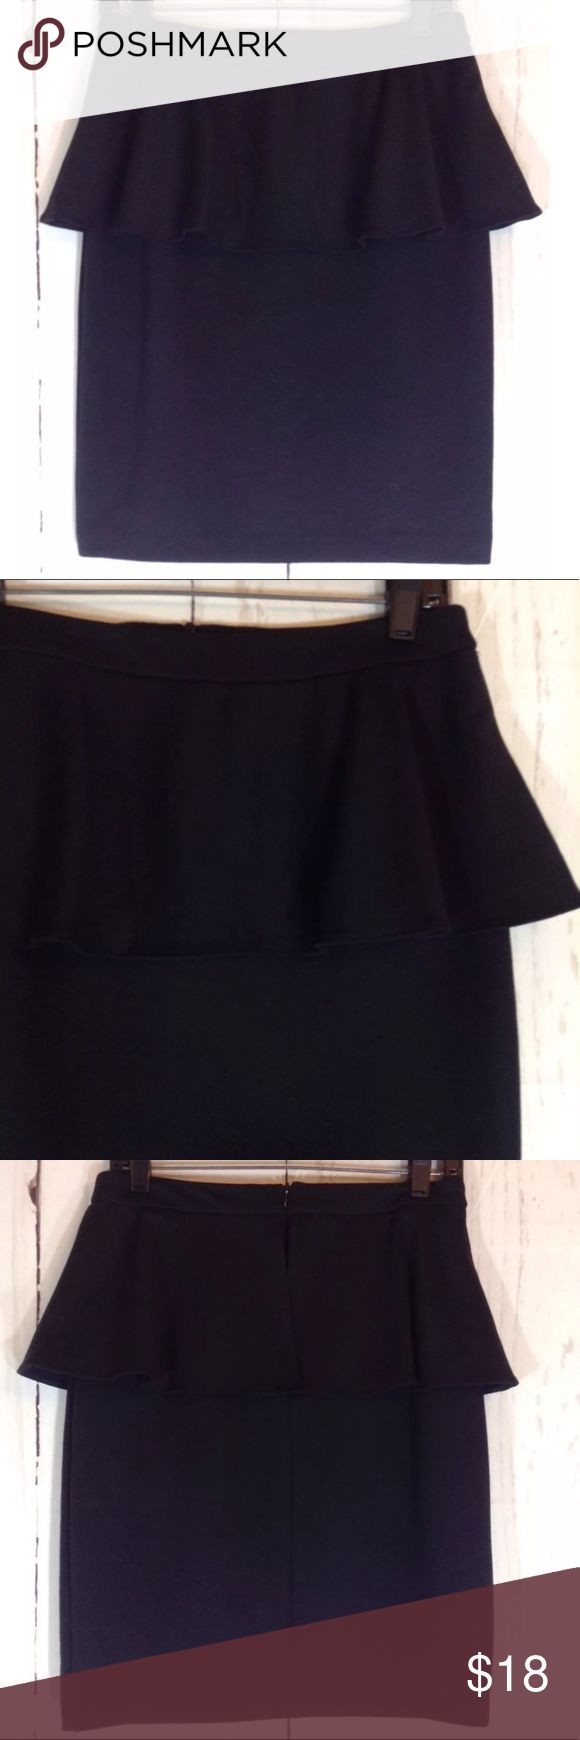 "Cynthia Rowley Black Peplum Skirt Size 4 Cynthia Rowley Black Peplum Ruffle Pencil Skirt Size 4 Hidden back zip  Approximate flat measurements:  Waist: 15"" Hips: 18.5"" Length: 21"" Cynthia Rowley Skirts Pencil"